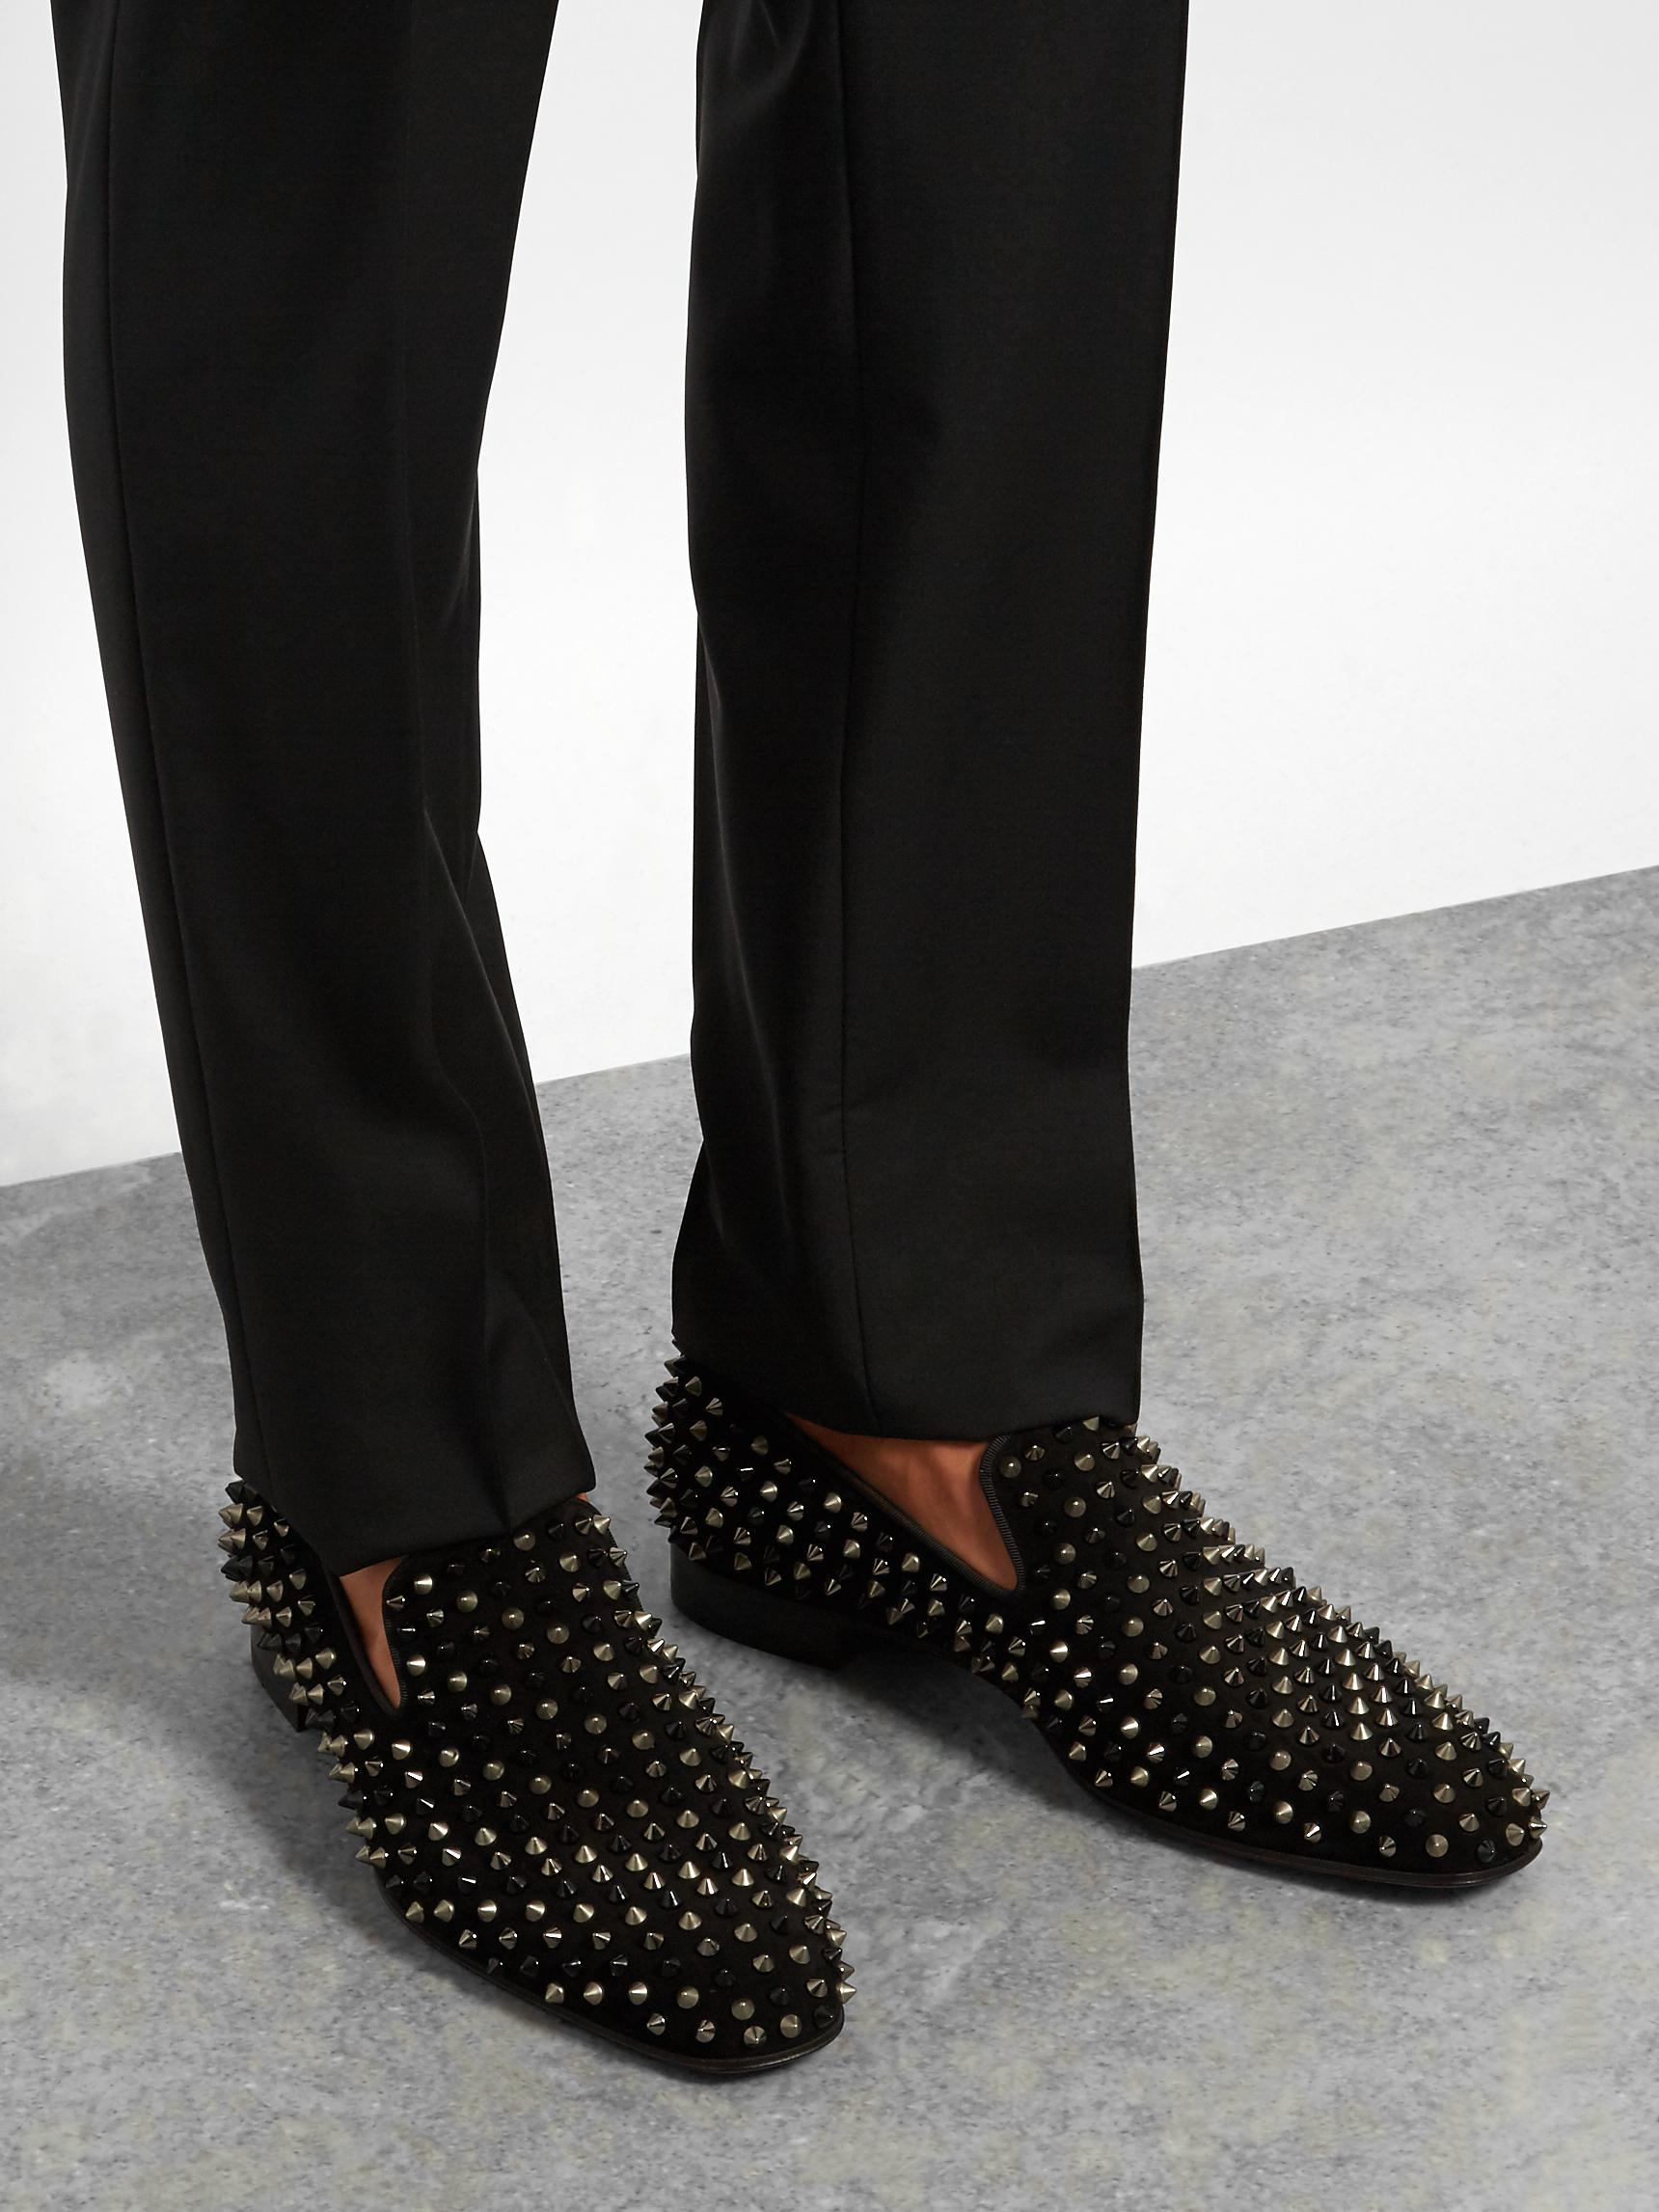 8474575d6715 Lyst - Christian Louboutin Dandelion Suede Spike Loafers in Black ...